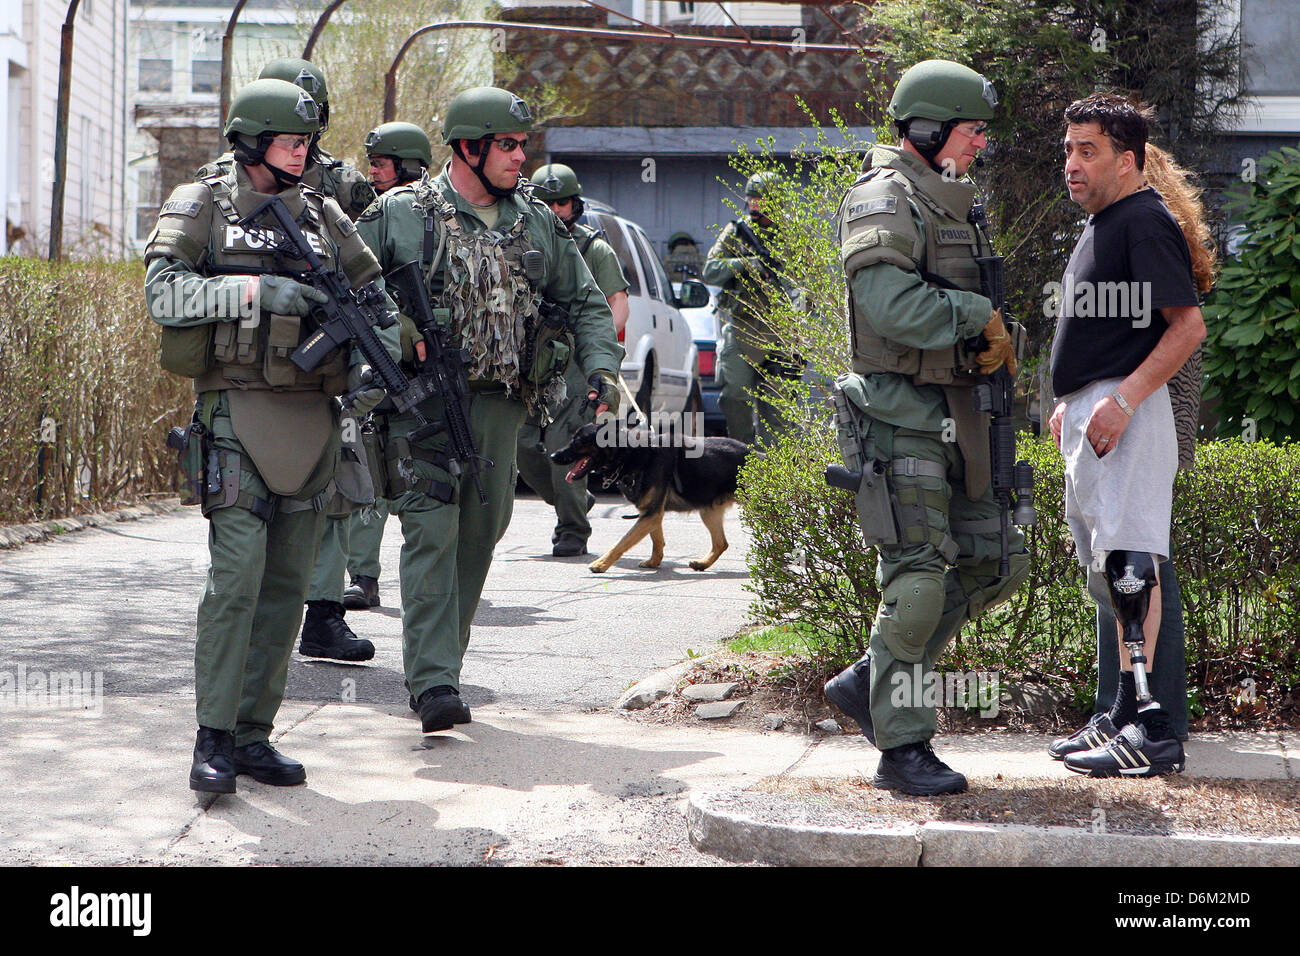 Watertown, Massachusetts, USA. 19th April, 2013. A SWAT team member ...